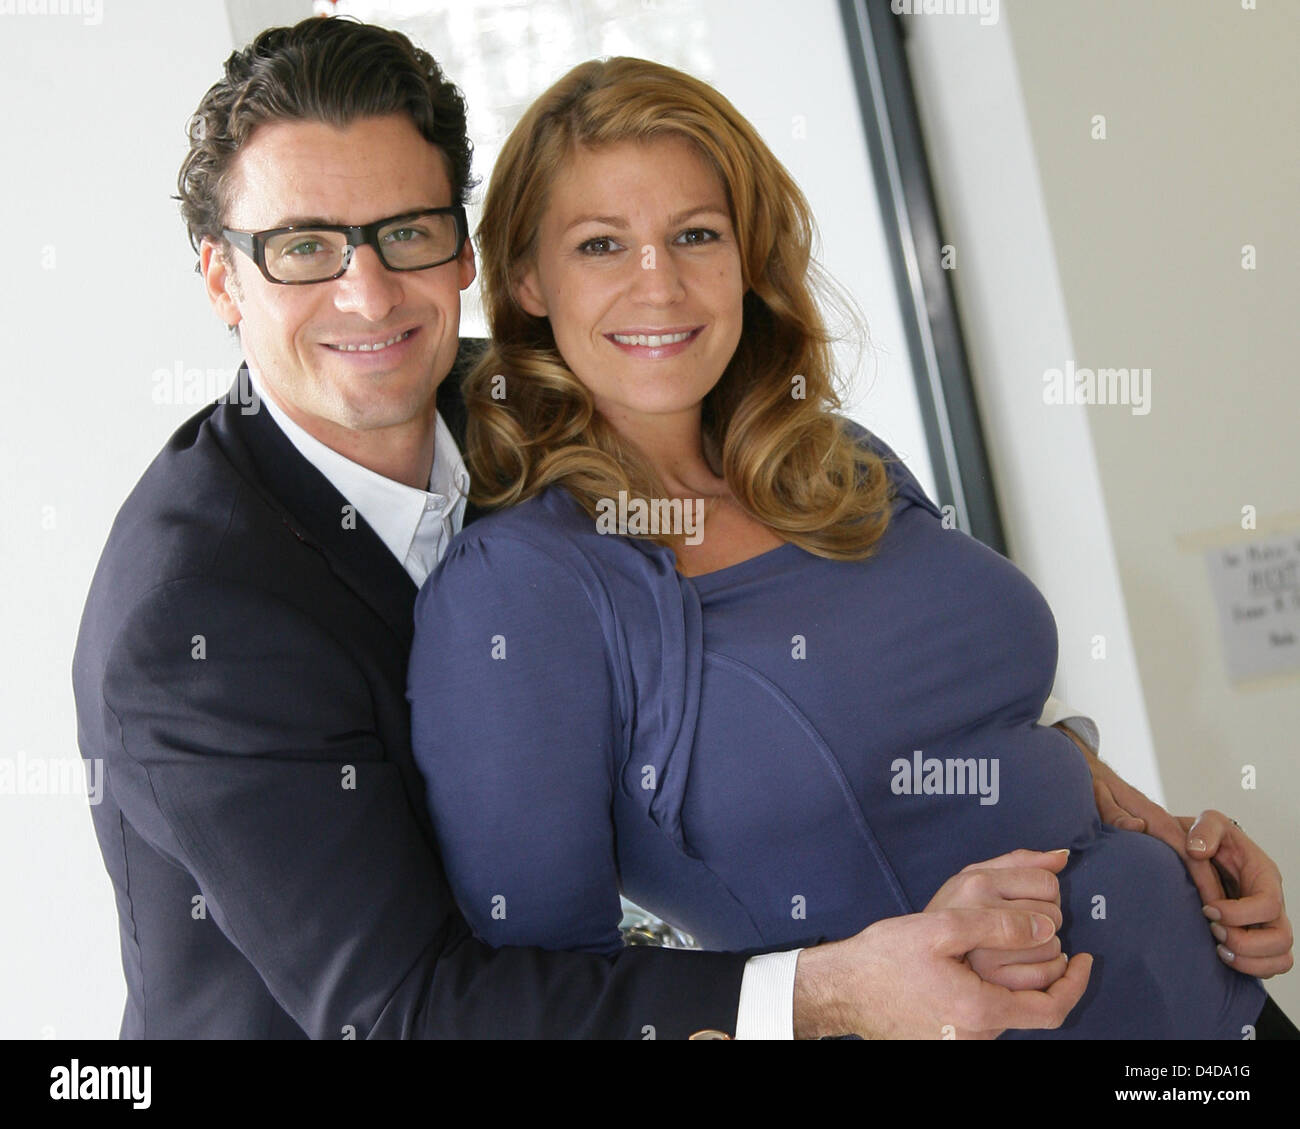 actor stephan luca l and actress sophie schuett pose for a photo stock photo 54382988 alamy